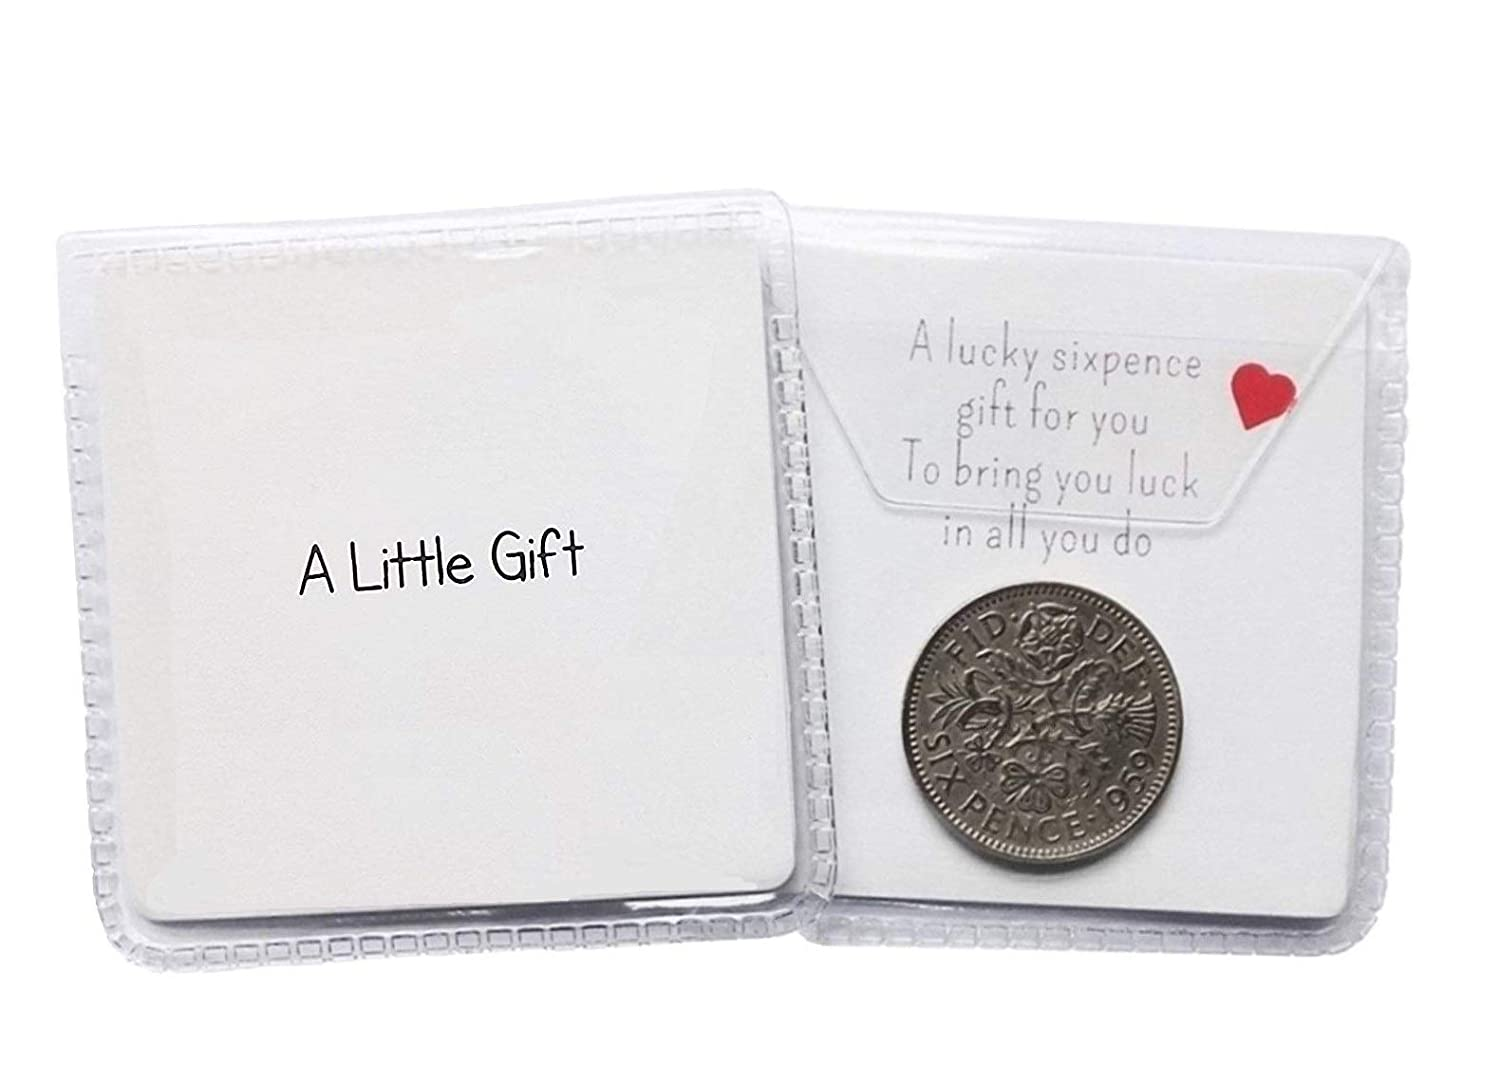 'A Little Gift' Lucky sixpence general gift for various occasions including wedding favours or as a little token present The Sixpence Seller